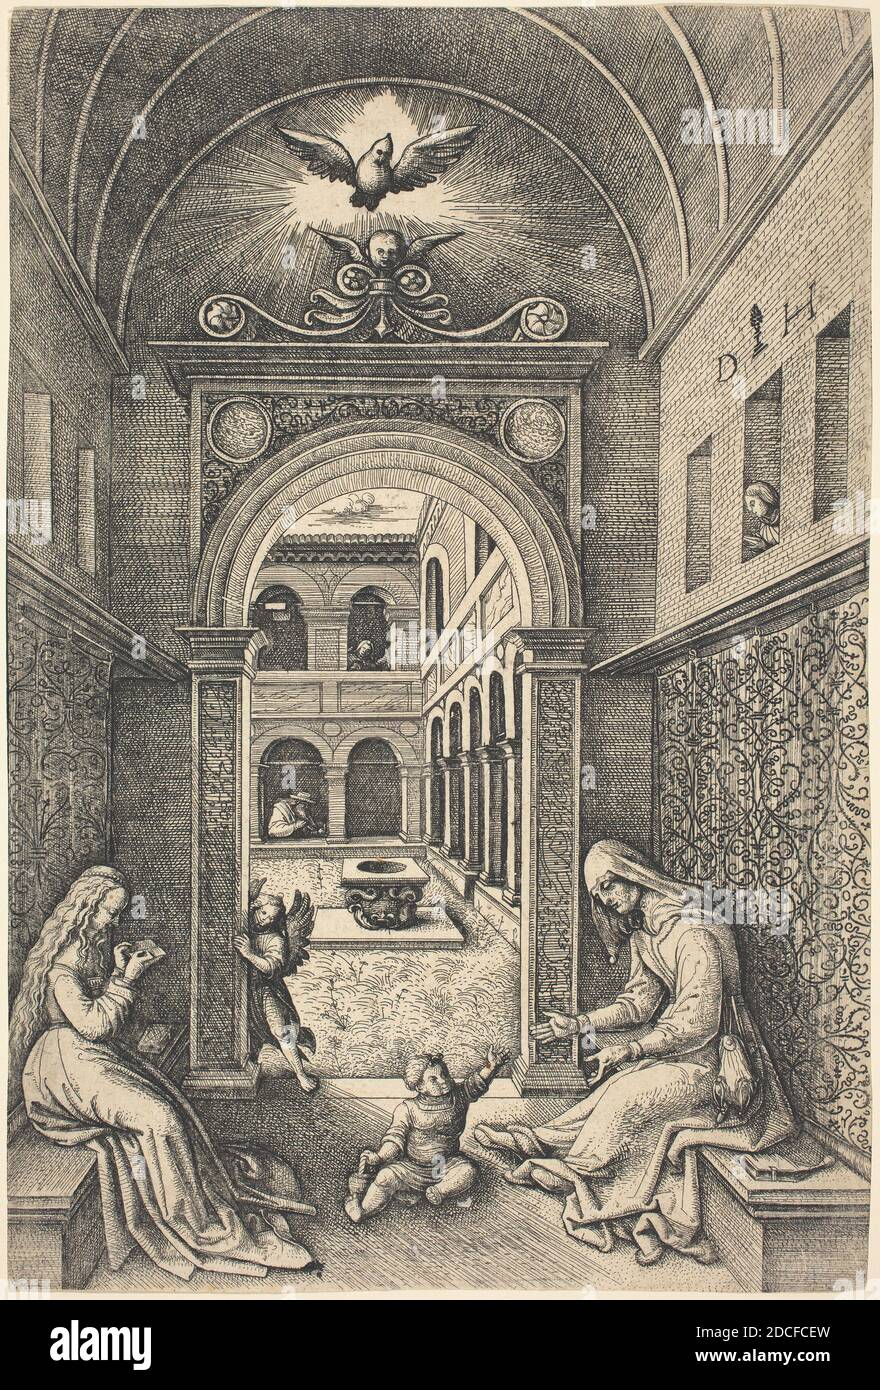 Daniel Hopfer, (artist), German, c. 1470 - 1536, The Virgin and Child with Saint Anne by a Portal, etching (iron), plate bitten twice, sheet (trimmed within plate mark): 23 x 15.5 cm (9 1/16 x 6 1/8 in Stock Photo